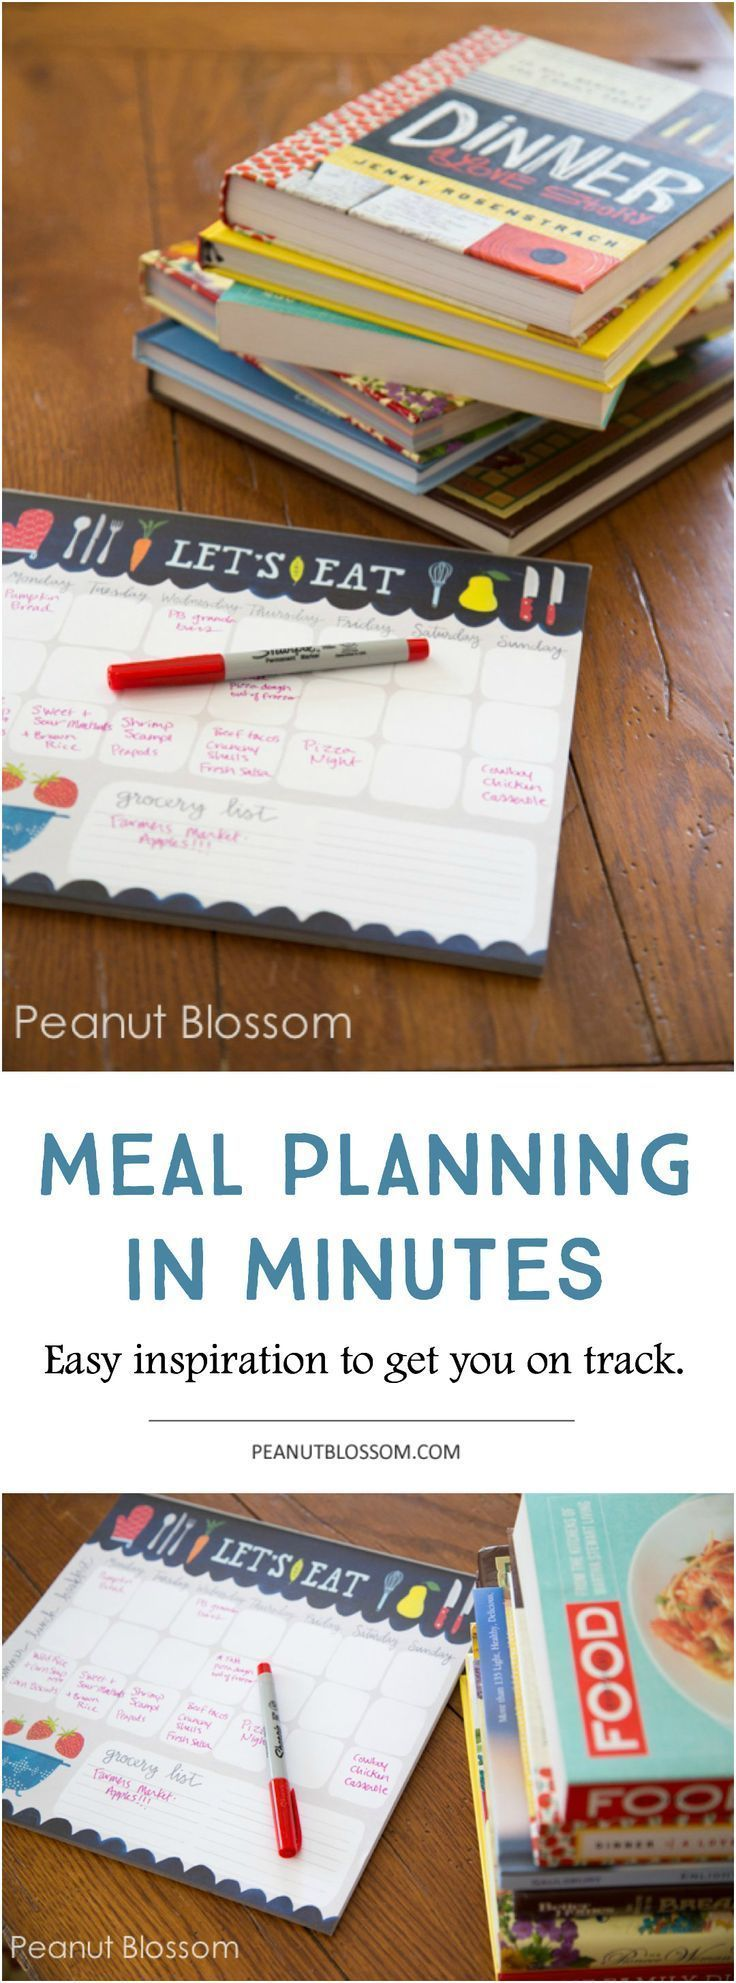 Struggle with meal planning? Check out this awesome approach to planning out your recipes for the whole week in just minutes. I love how much time it saves me not having to worry about what to make for dinner! The system works especially great for getting dinner on the table during busy school nights.